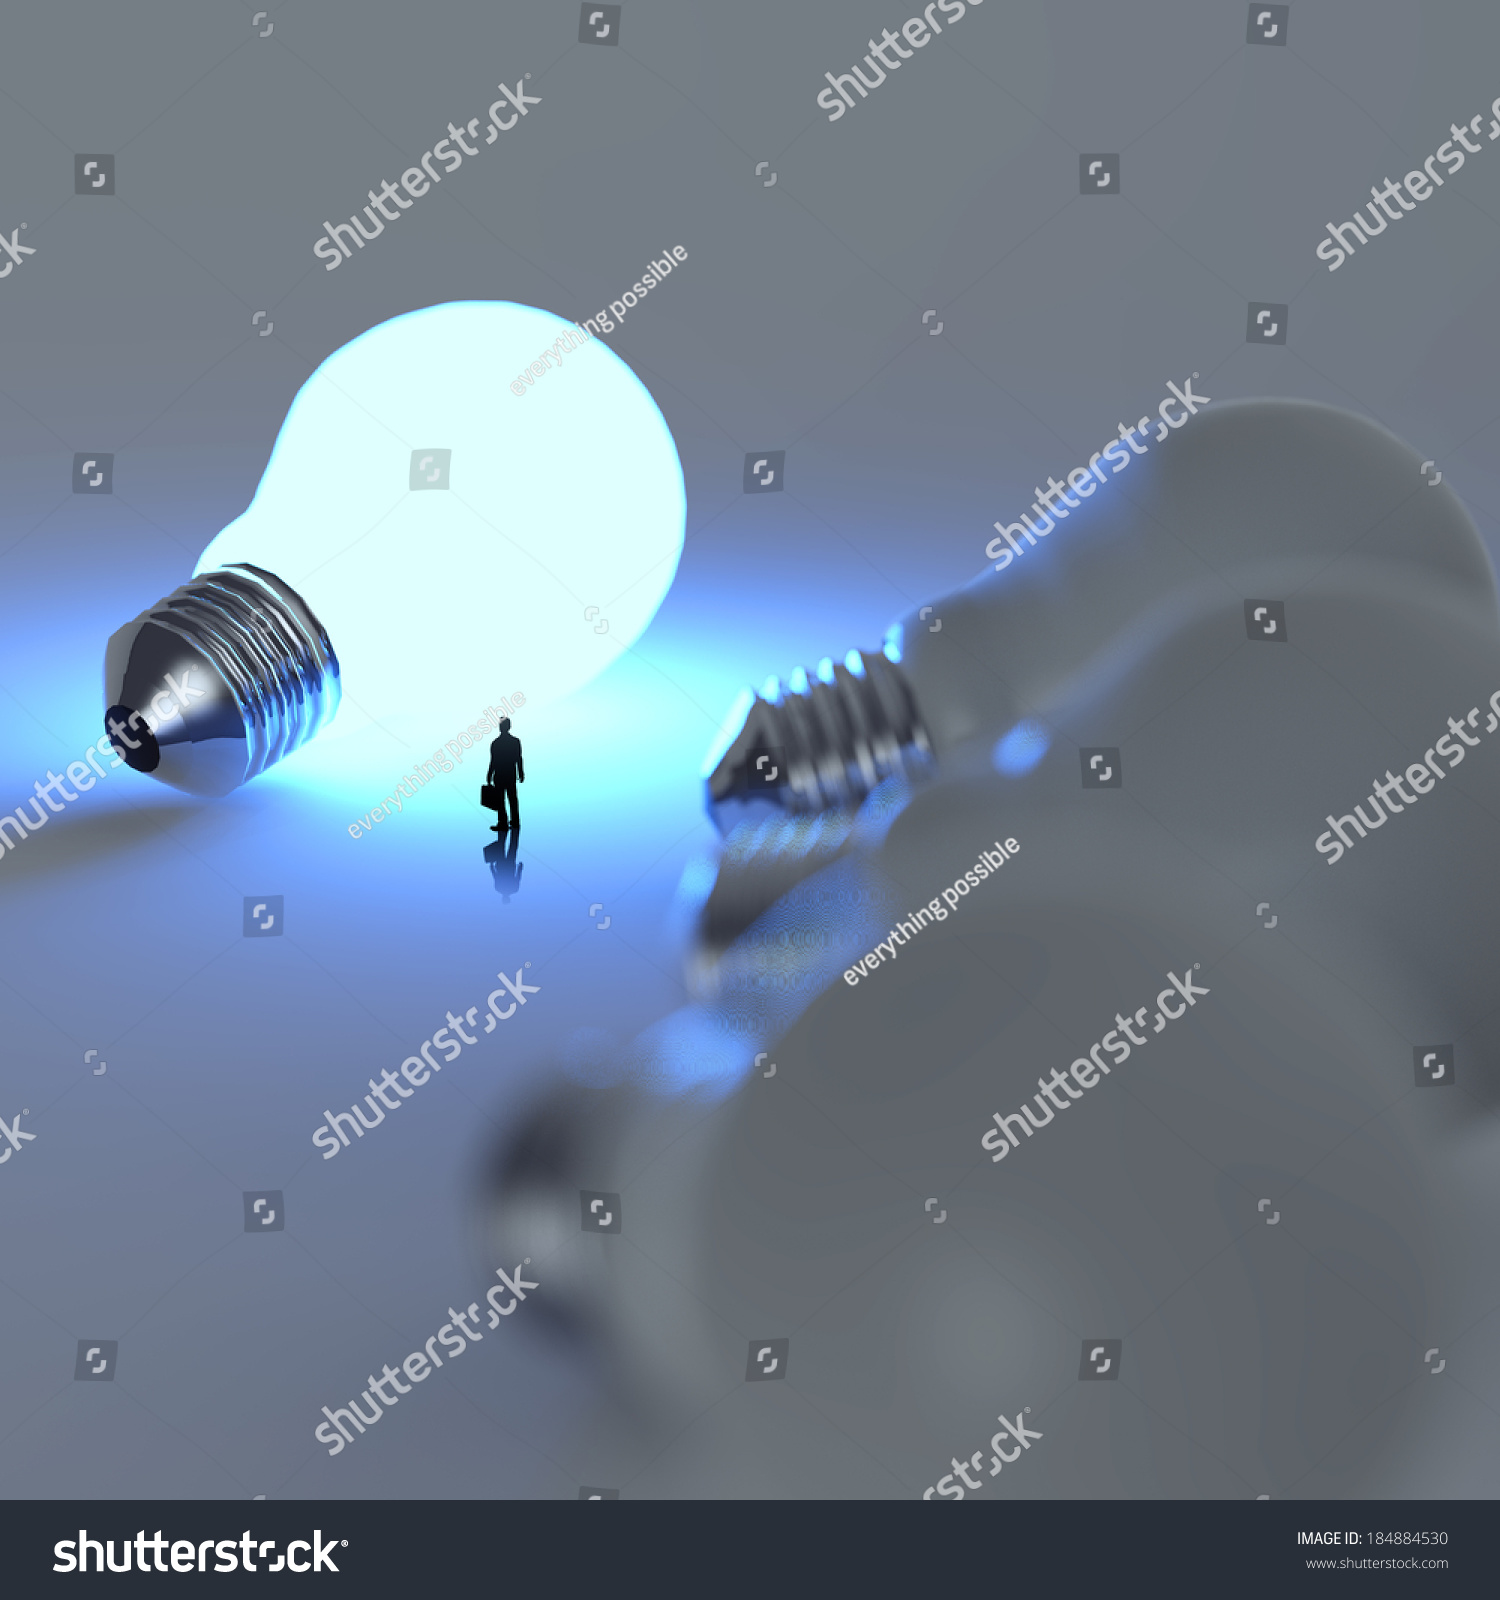 3d Growing Light Bulb Standing Out From The Unlit Incandescent Bulbs Diagram As Leadership Concept Ez Canvas